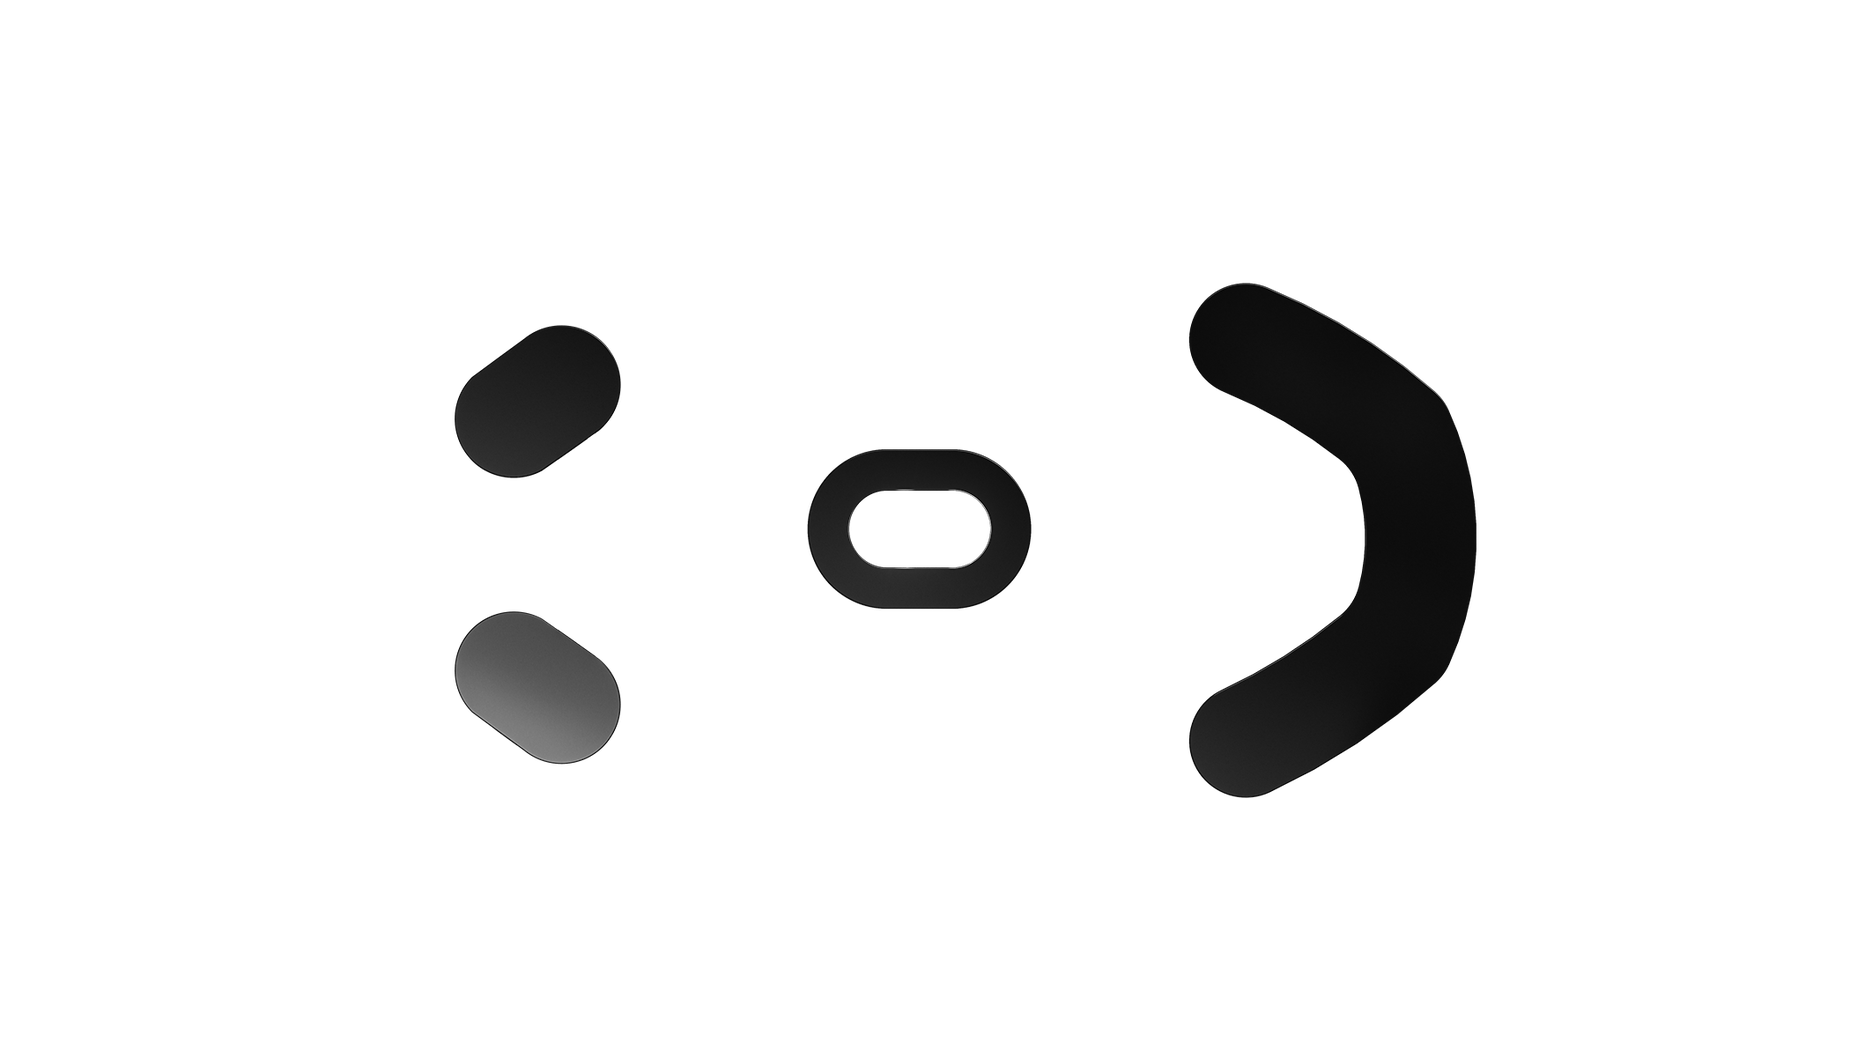 Overhead view of the mouse glides for the Prime gaming mouse feet.